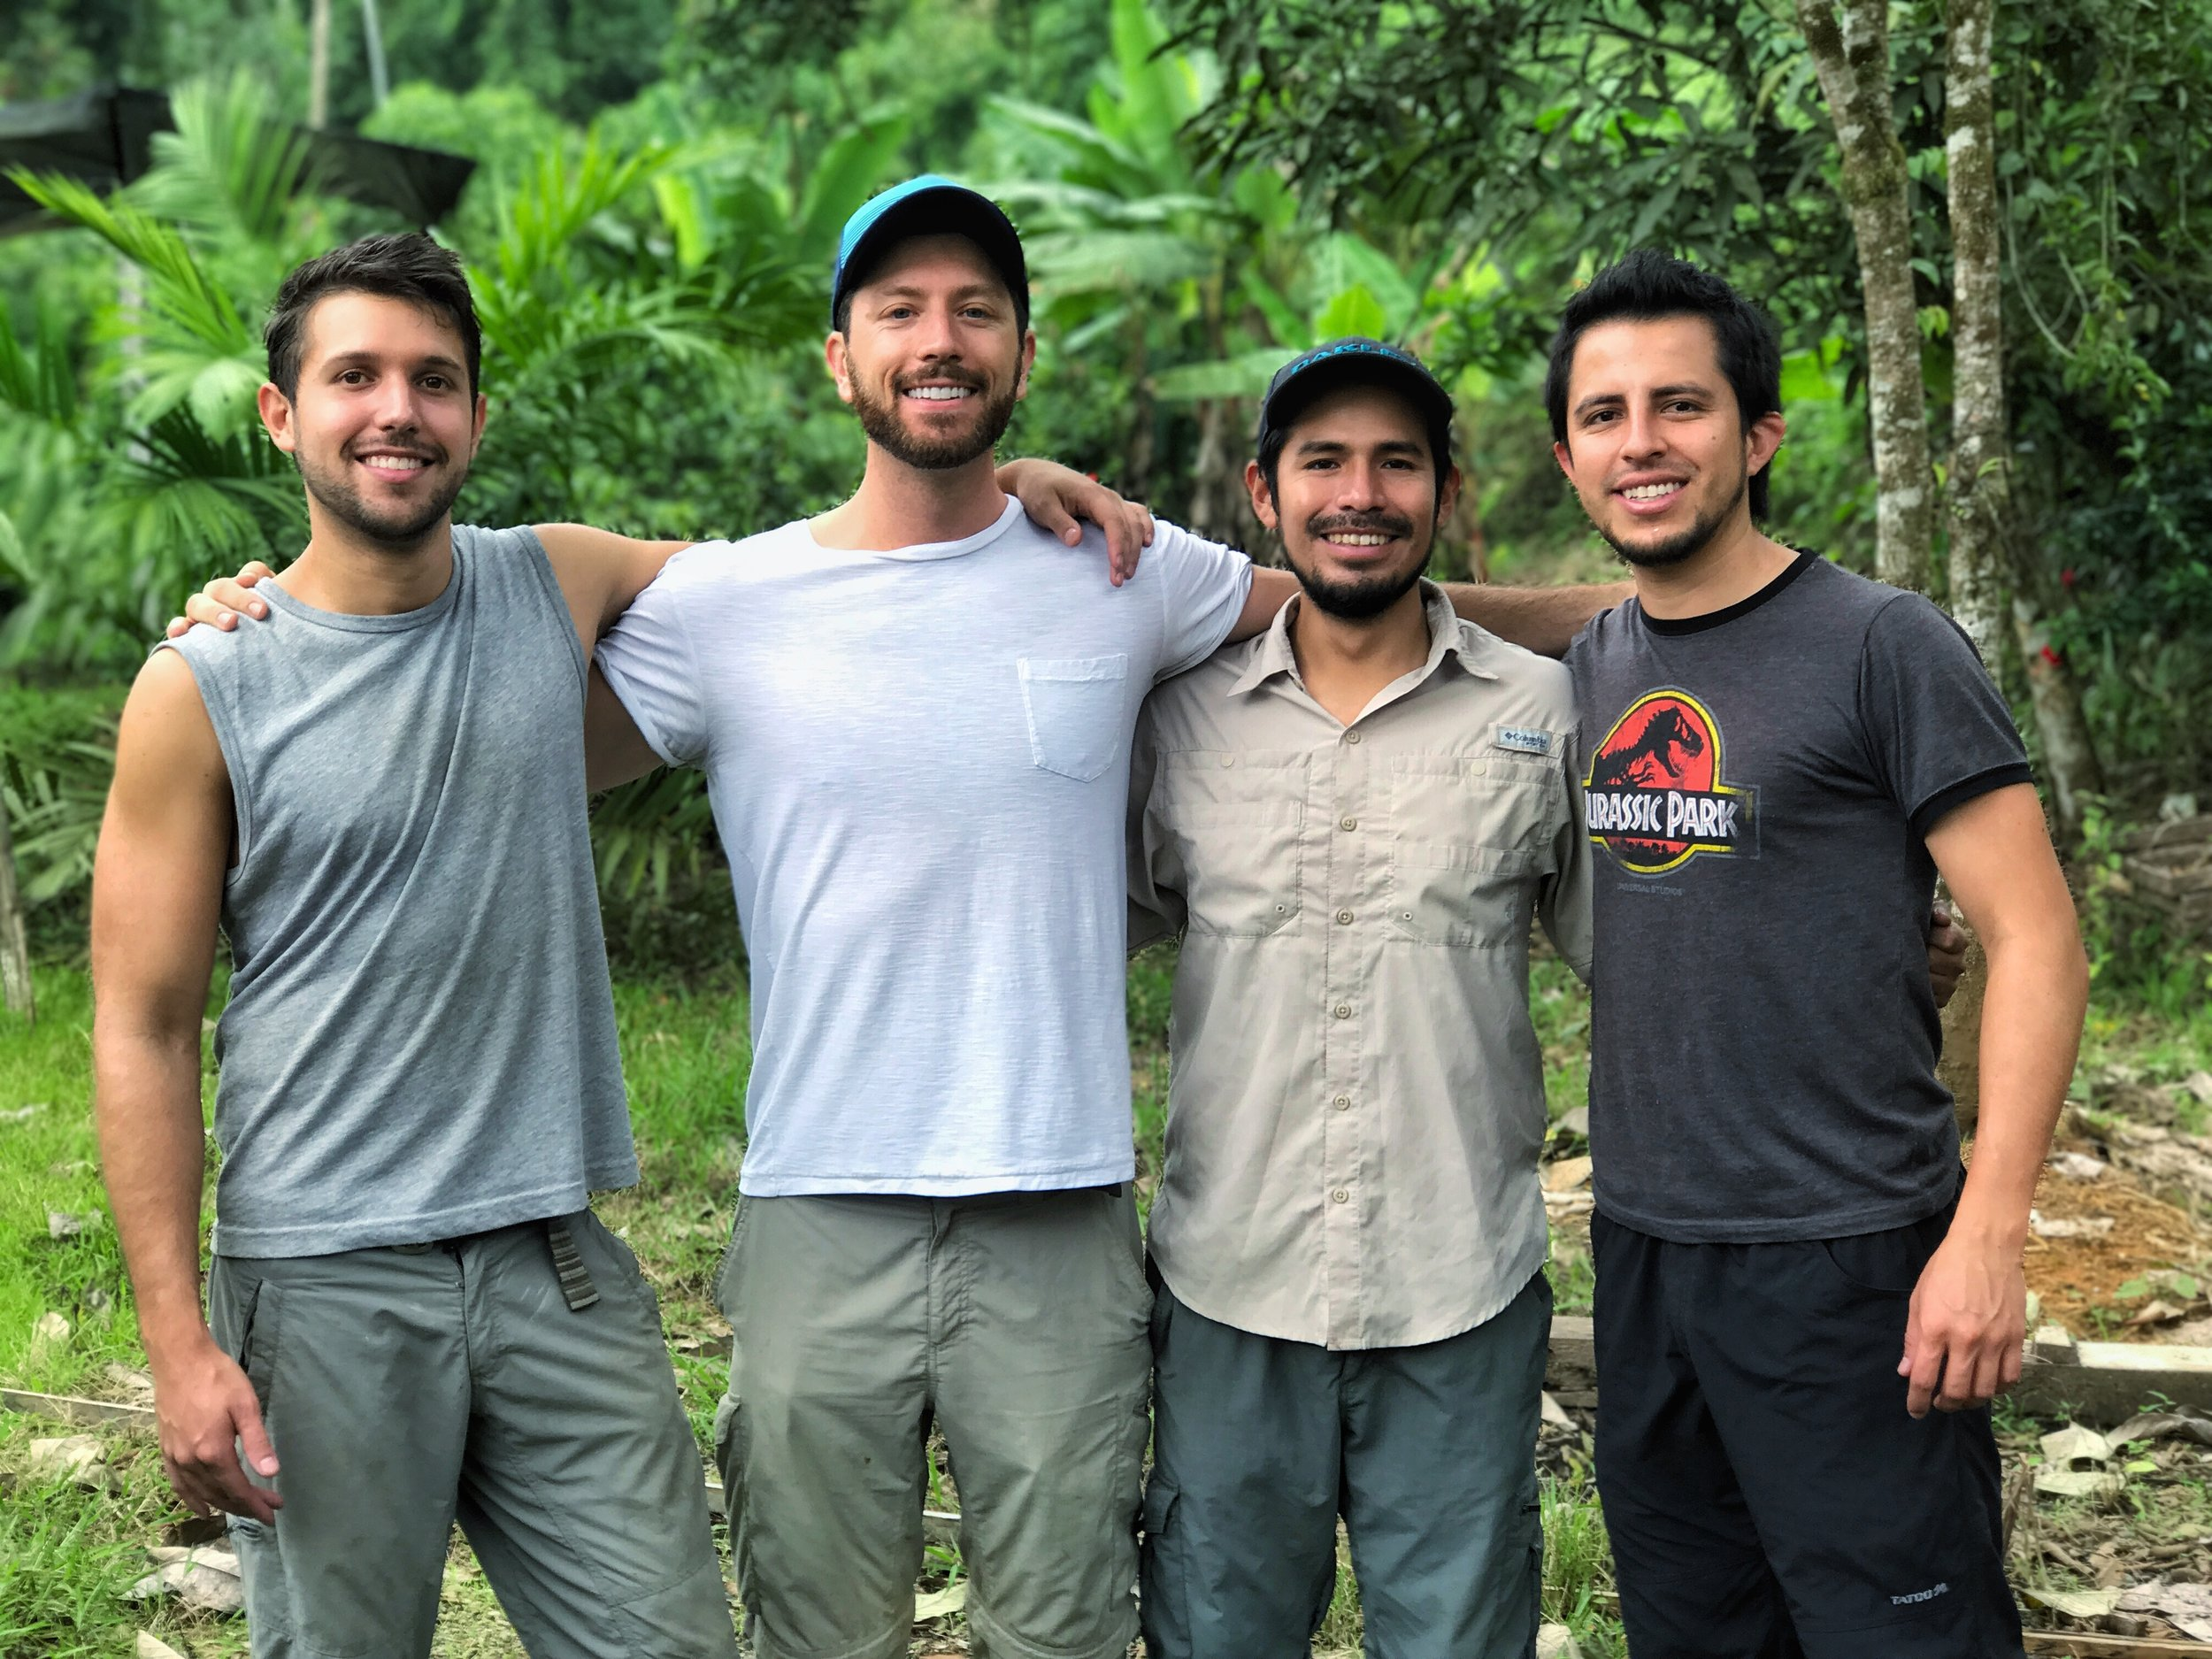 Some of the expedition team members! Left to right: Alejandro, Aaron, Frank and Lucas